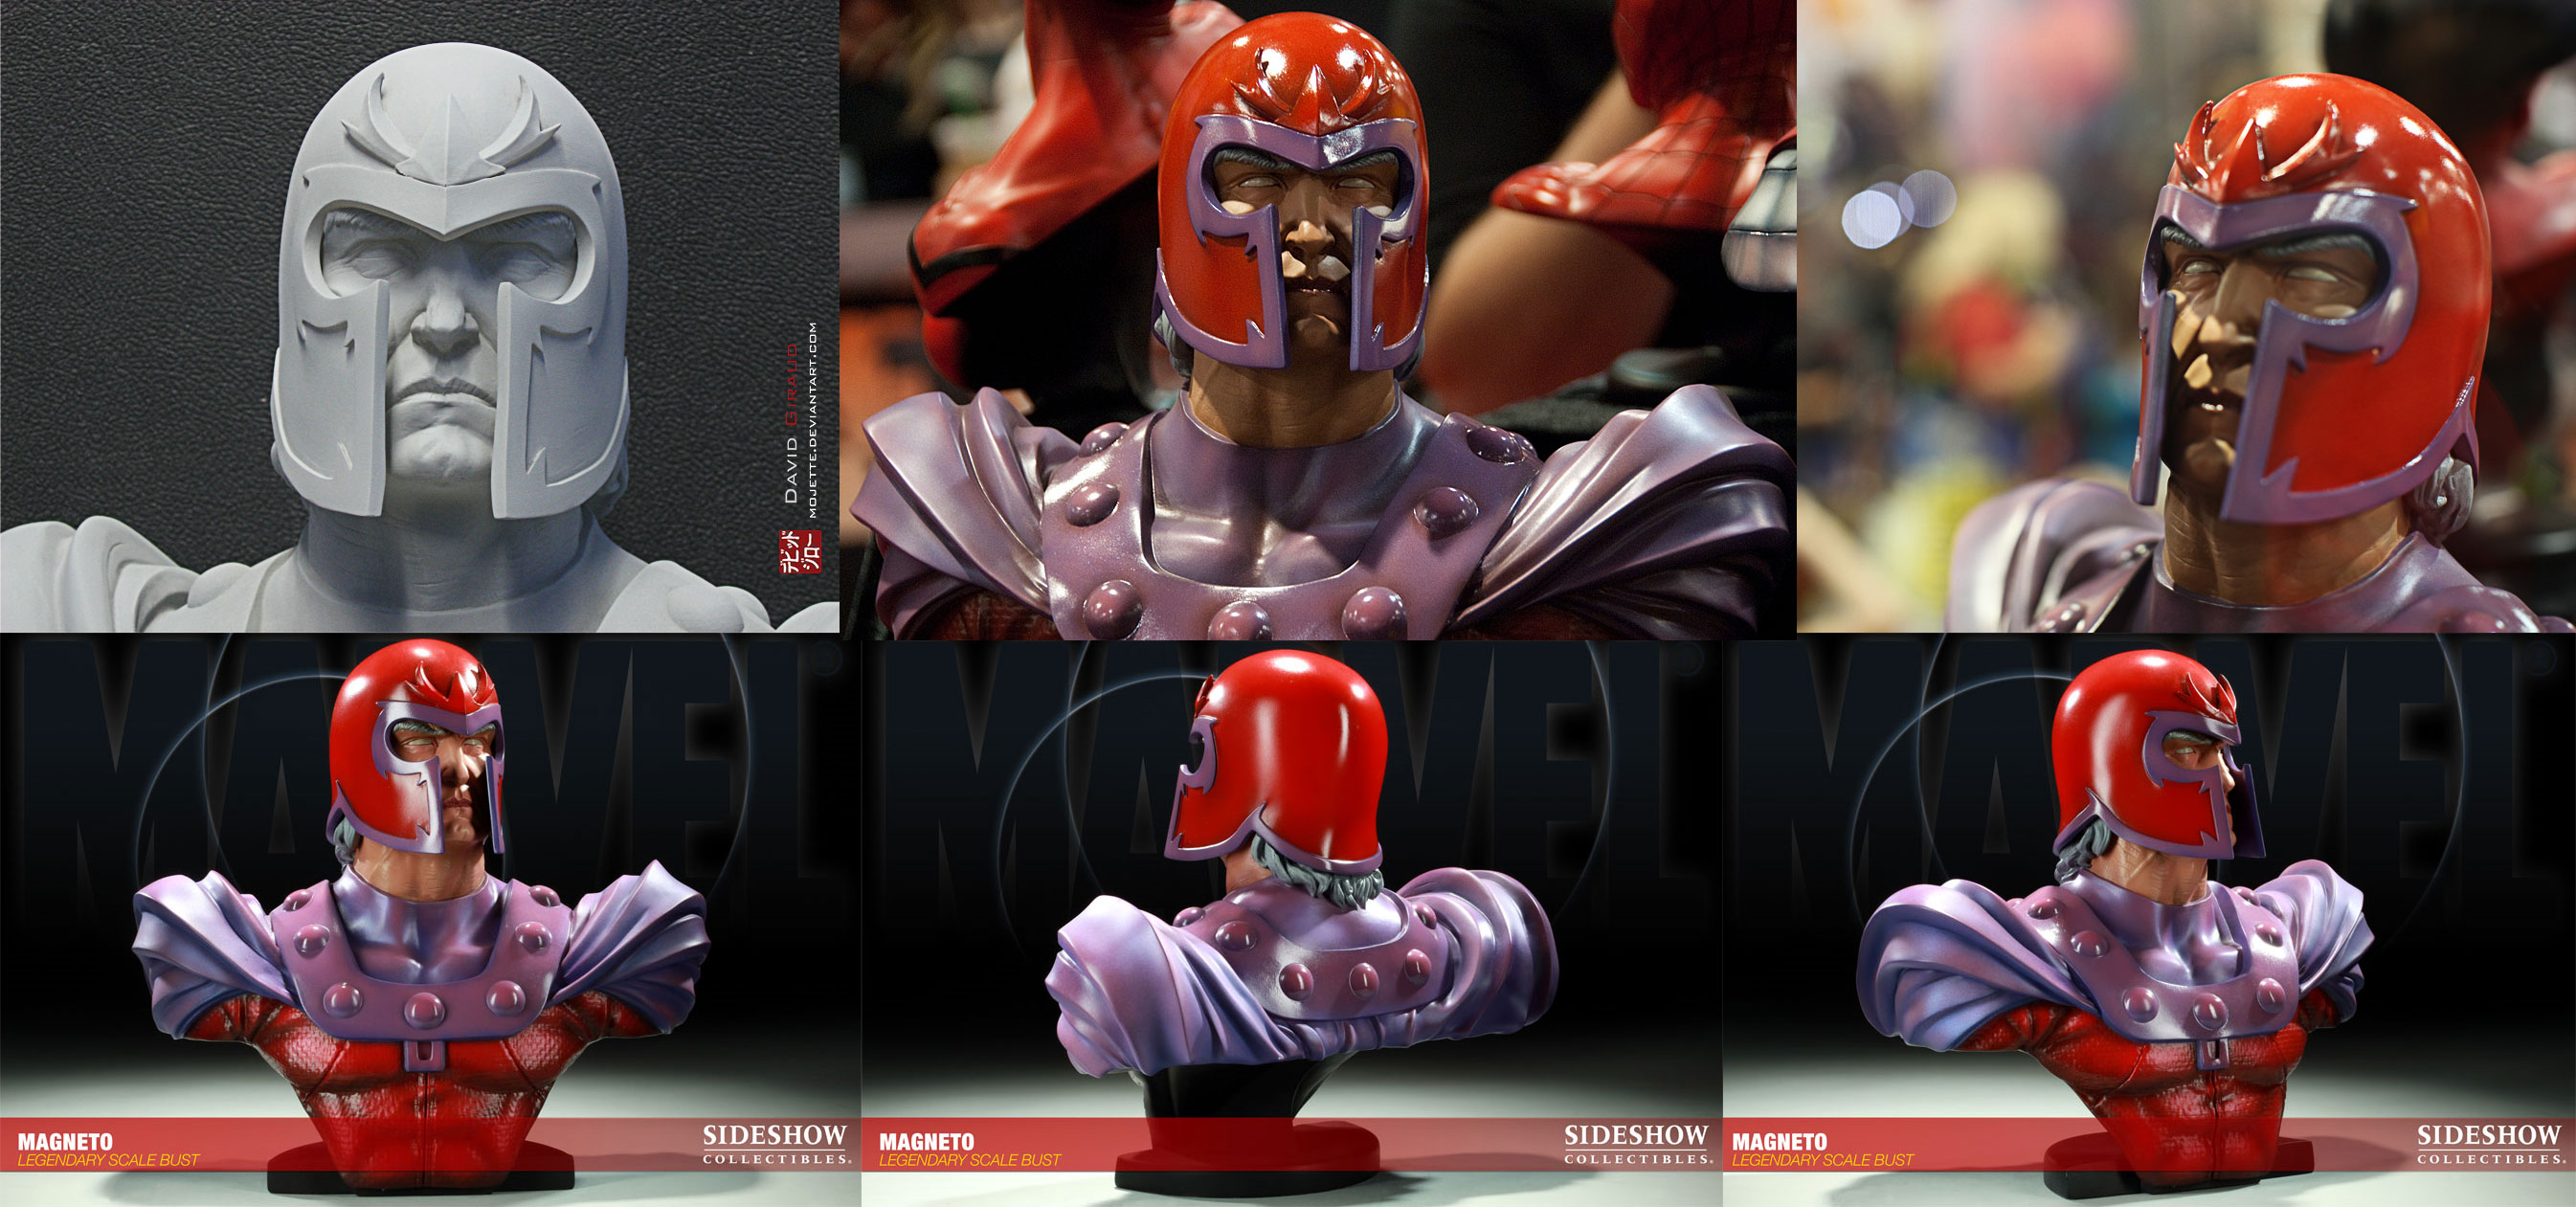 Magneto legendary scale bust by mojette